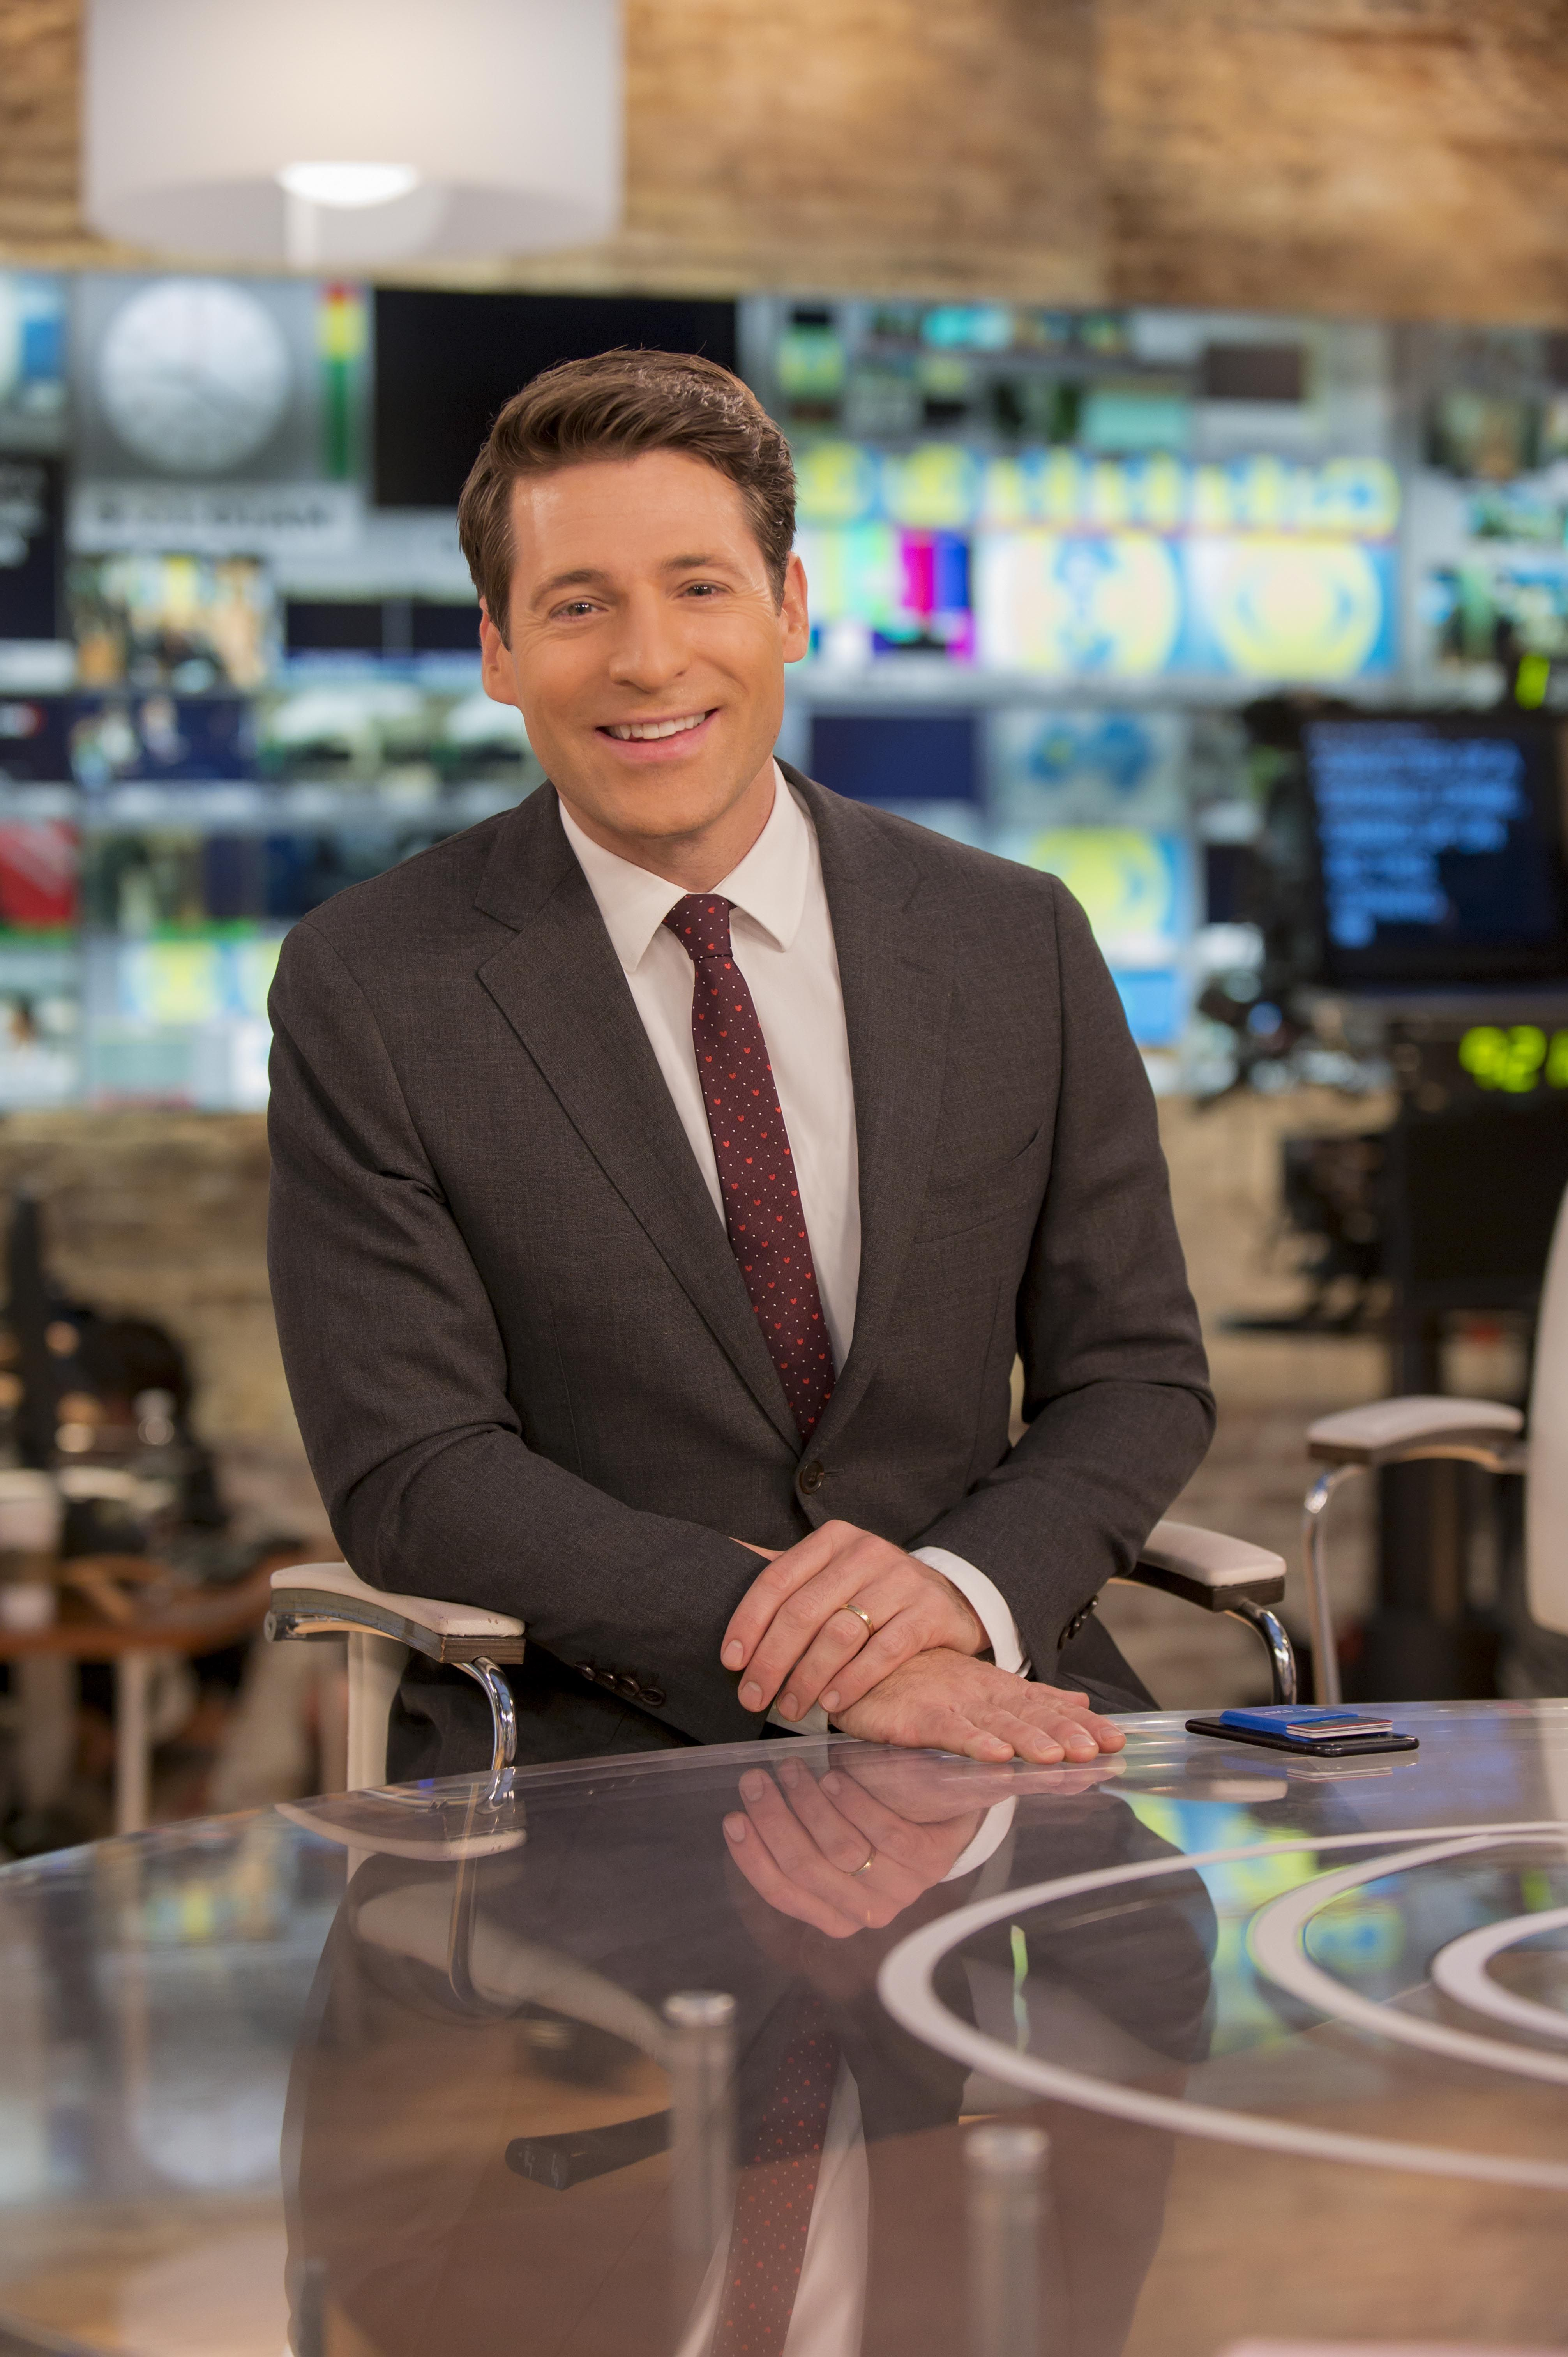 Tony Dokoupil of 'CBS This Morning' on Wife Katy Tur and New